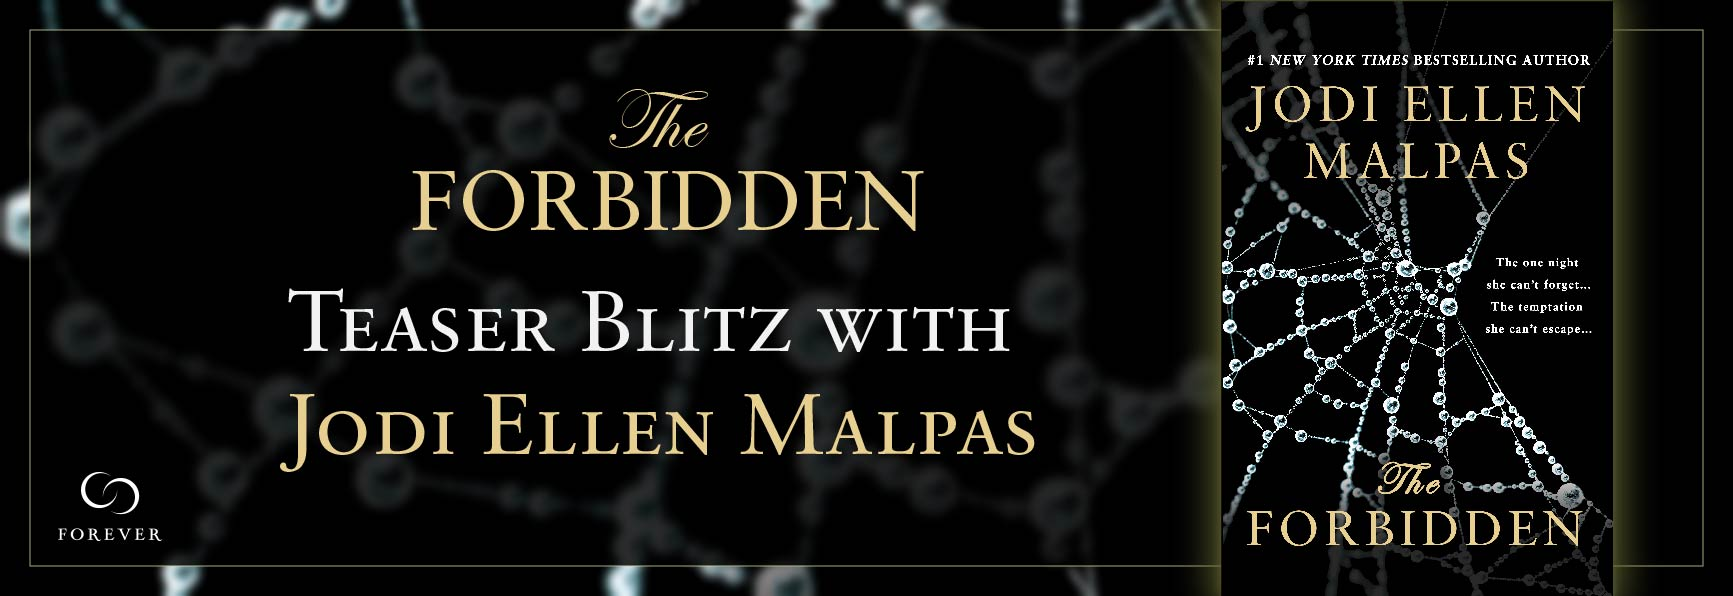 5 Advance Reading Copies (ARC) of THE FORBIDDEN by Jodi Ellen Malpas